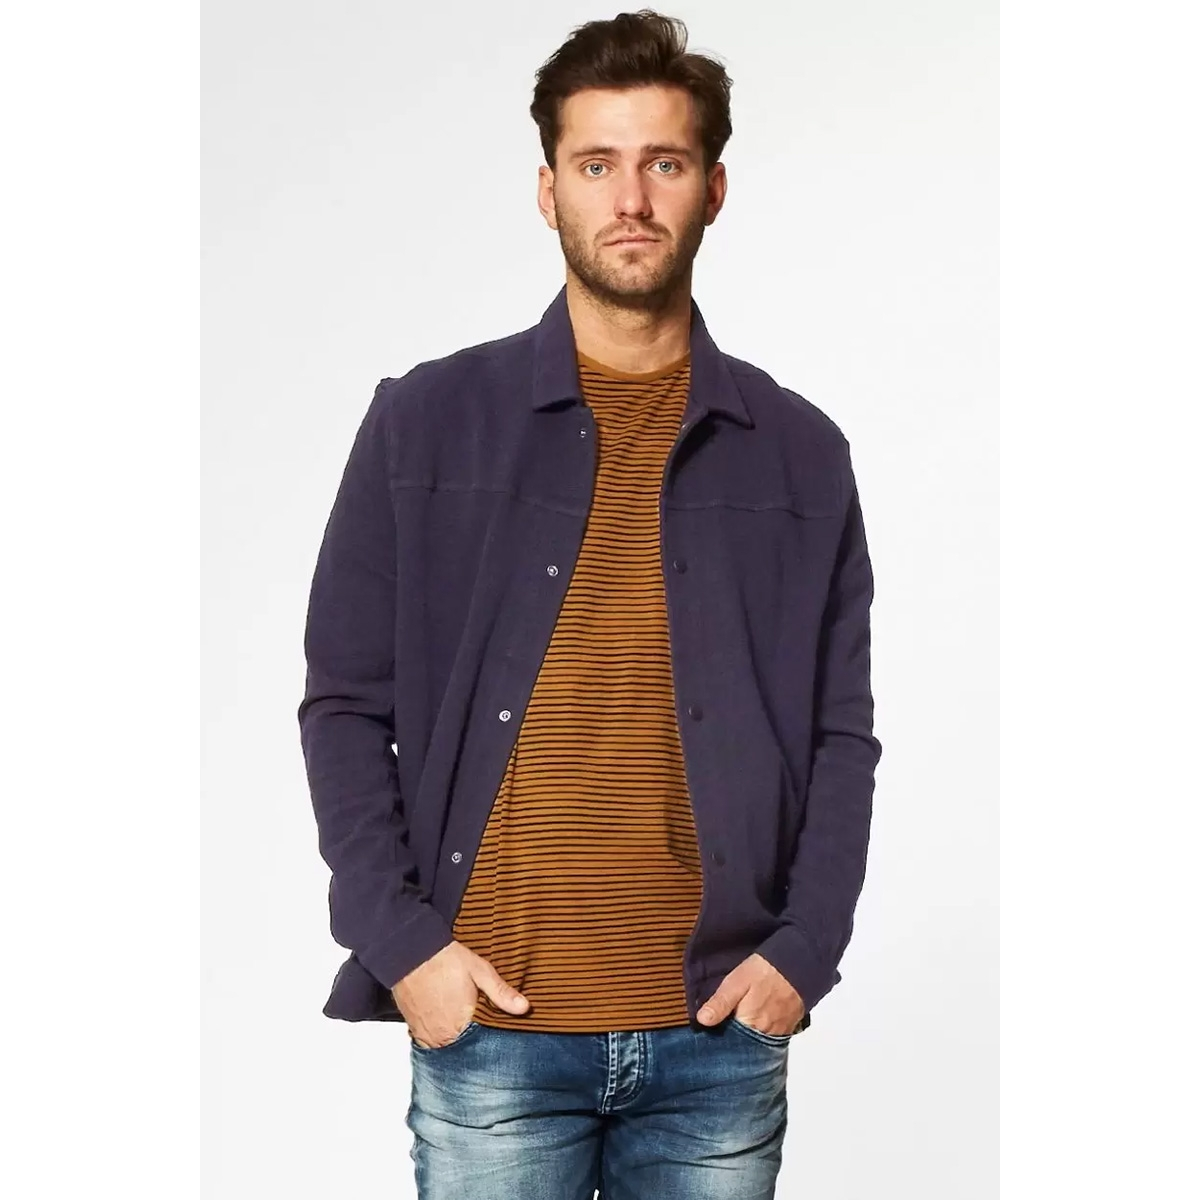 tord jacket hw19 58 circle of trust jas 4020 firefly blue